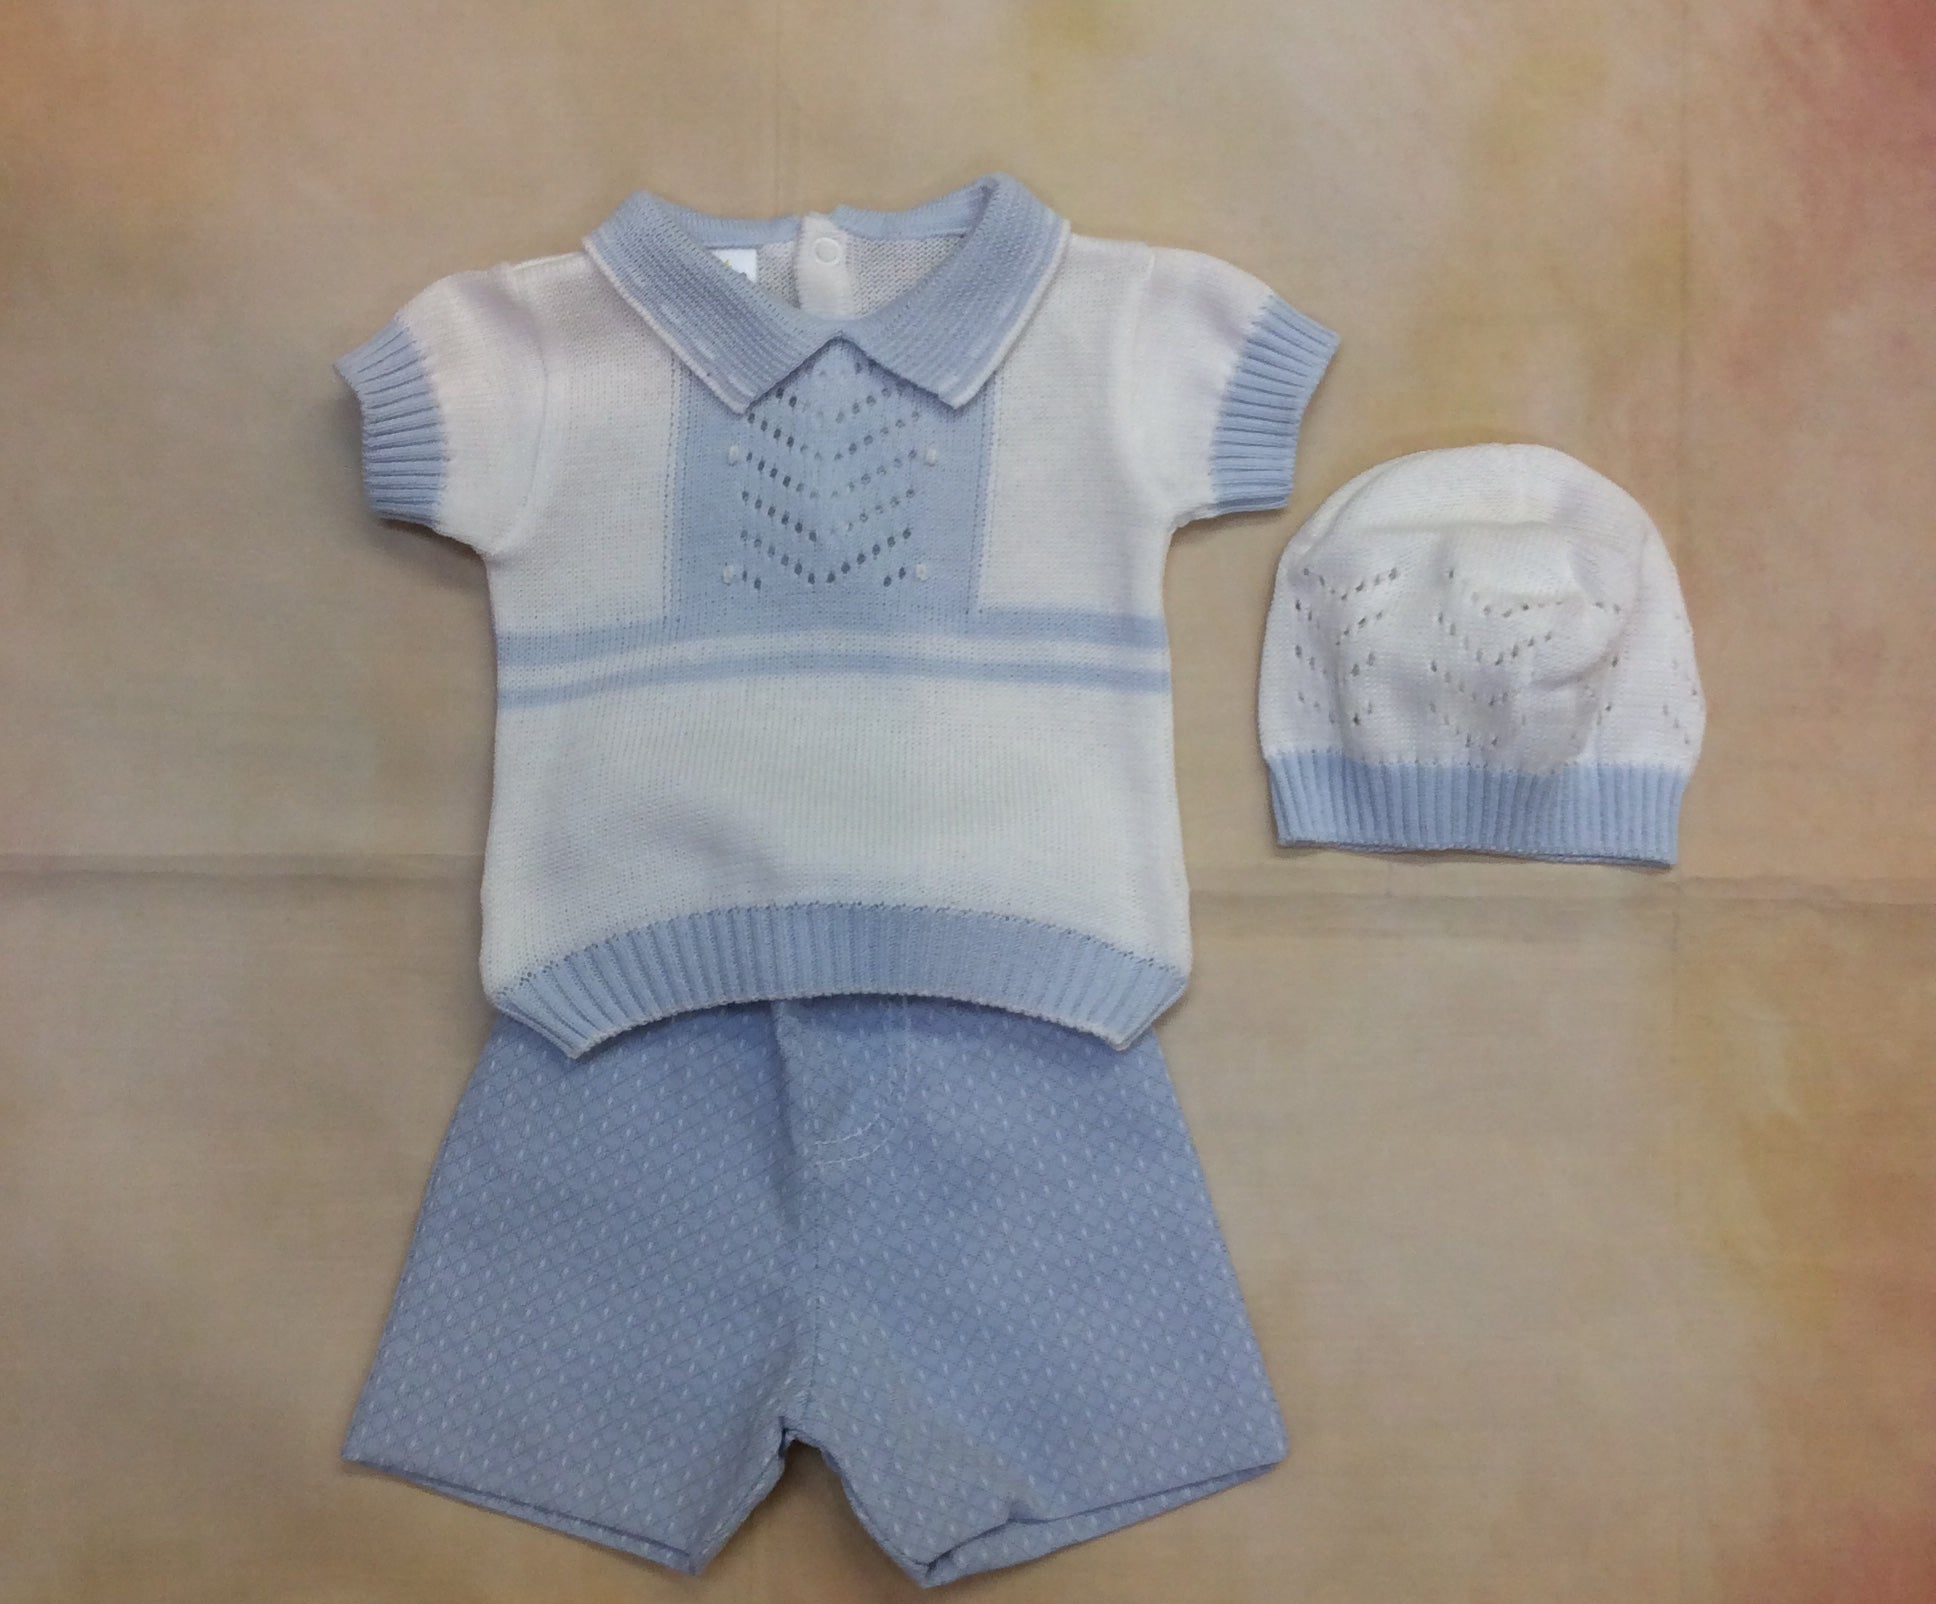 DG22SS19/CUEN180W Boys White & sky blue knit top and short - Nenes Lullaby Boutique Inc